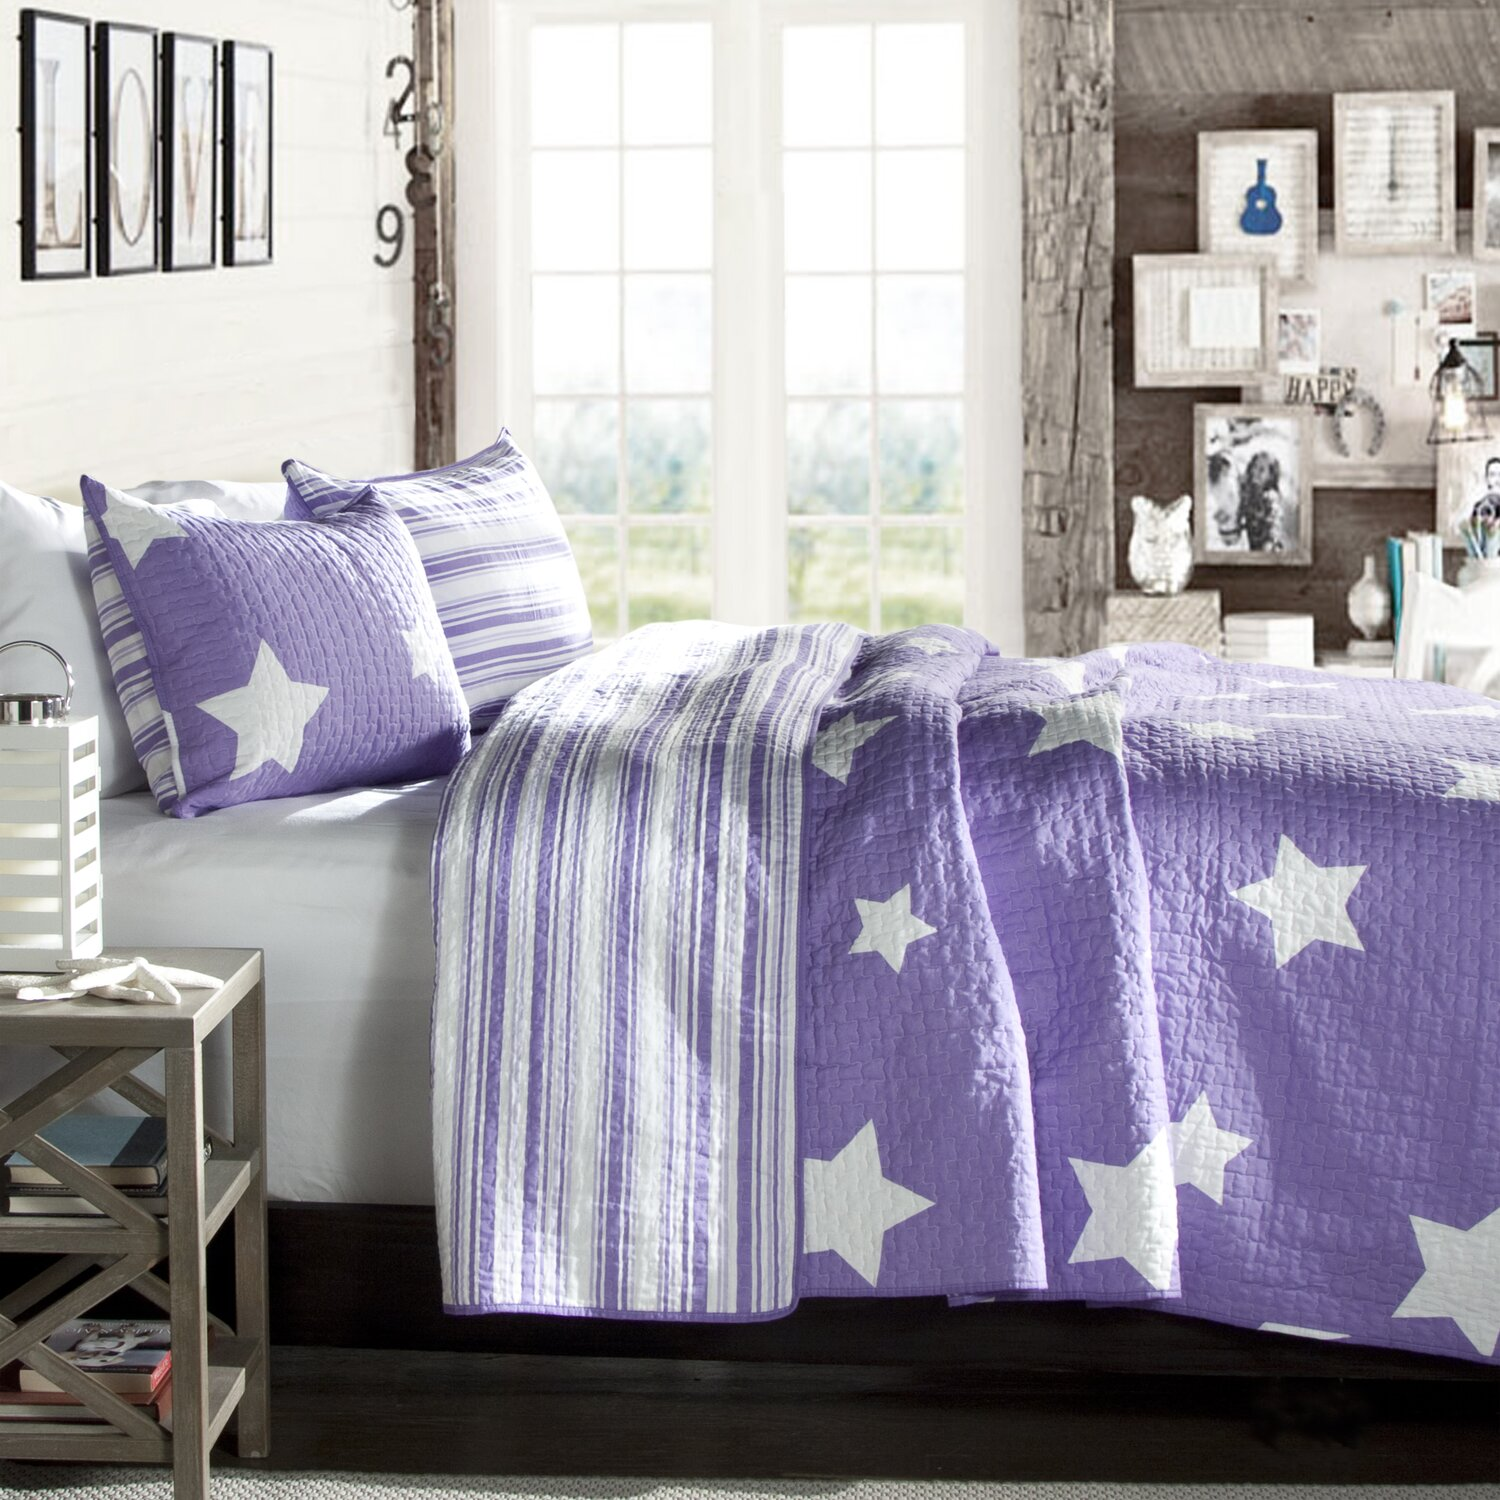 and bedding super twin ideas set sets green comforter bedroom king for grey full duvet linen cover quilt black floral sheets uk sweetgalas deep purple cotton of lilac single pretty best light duvets white designs covers plum size tokida